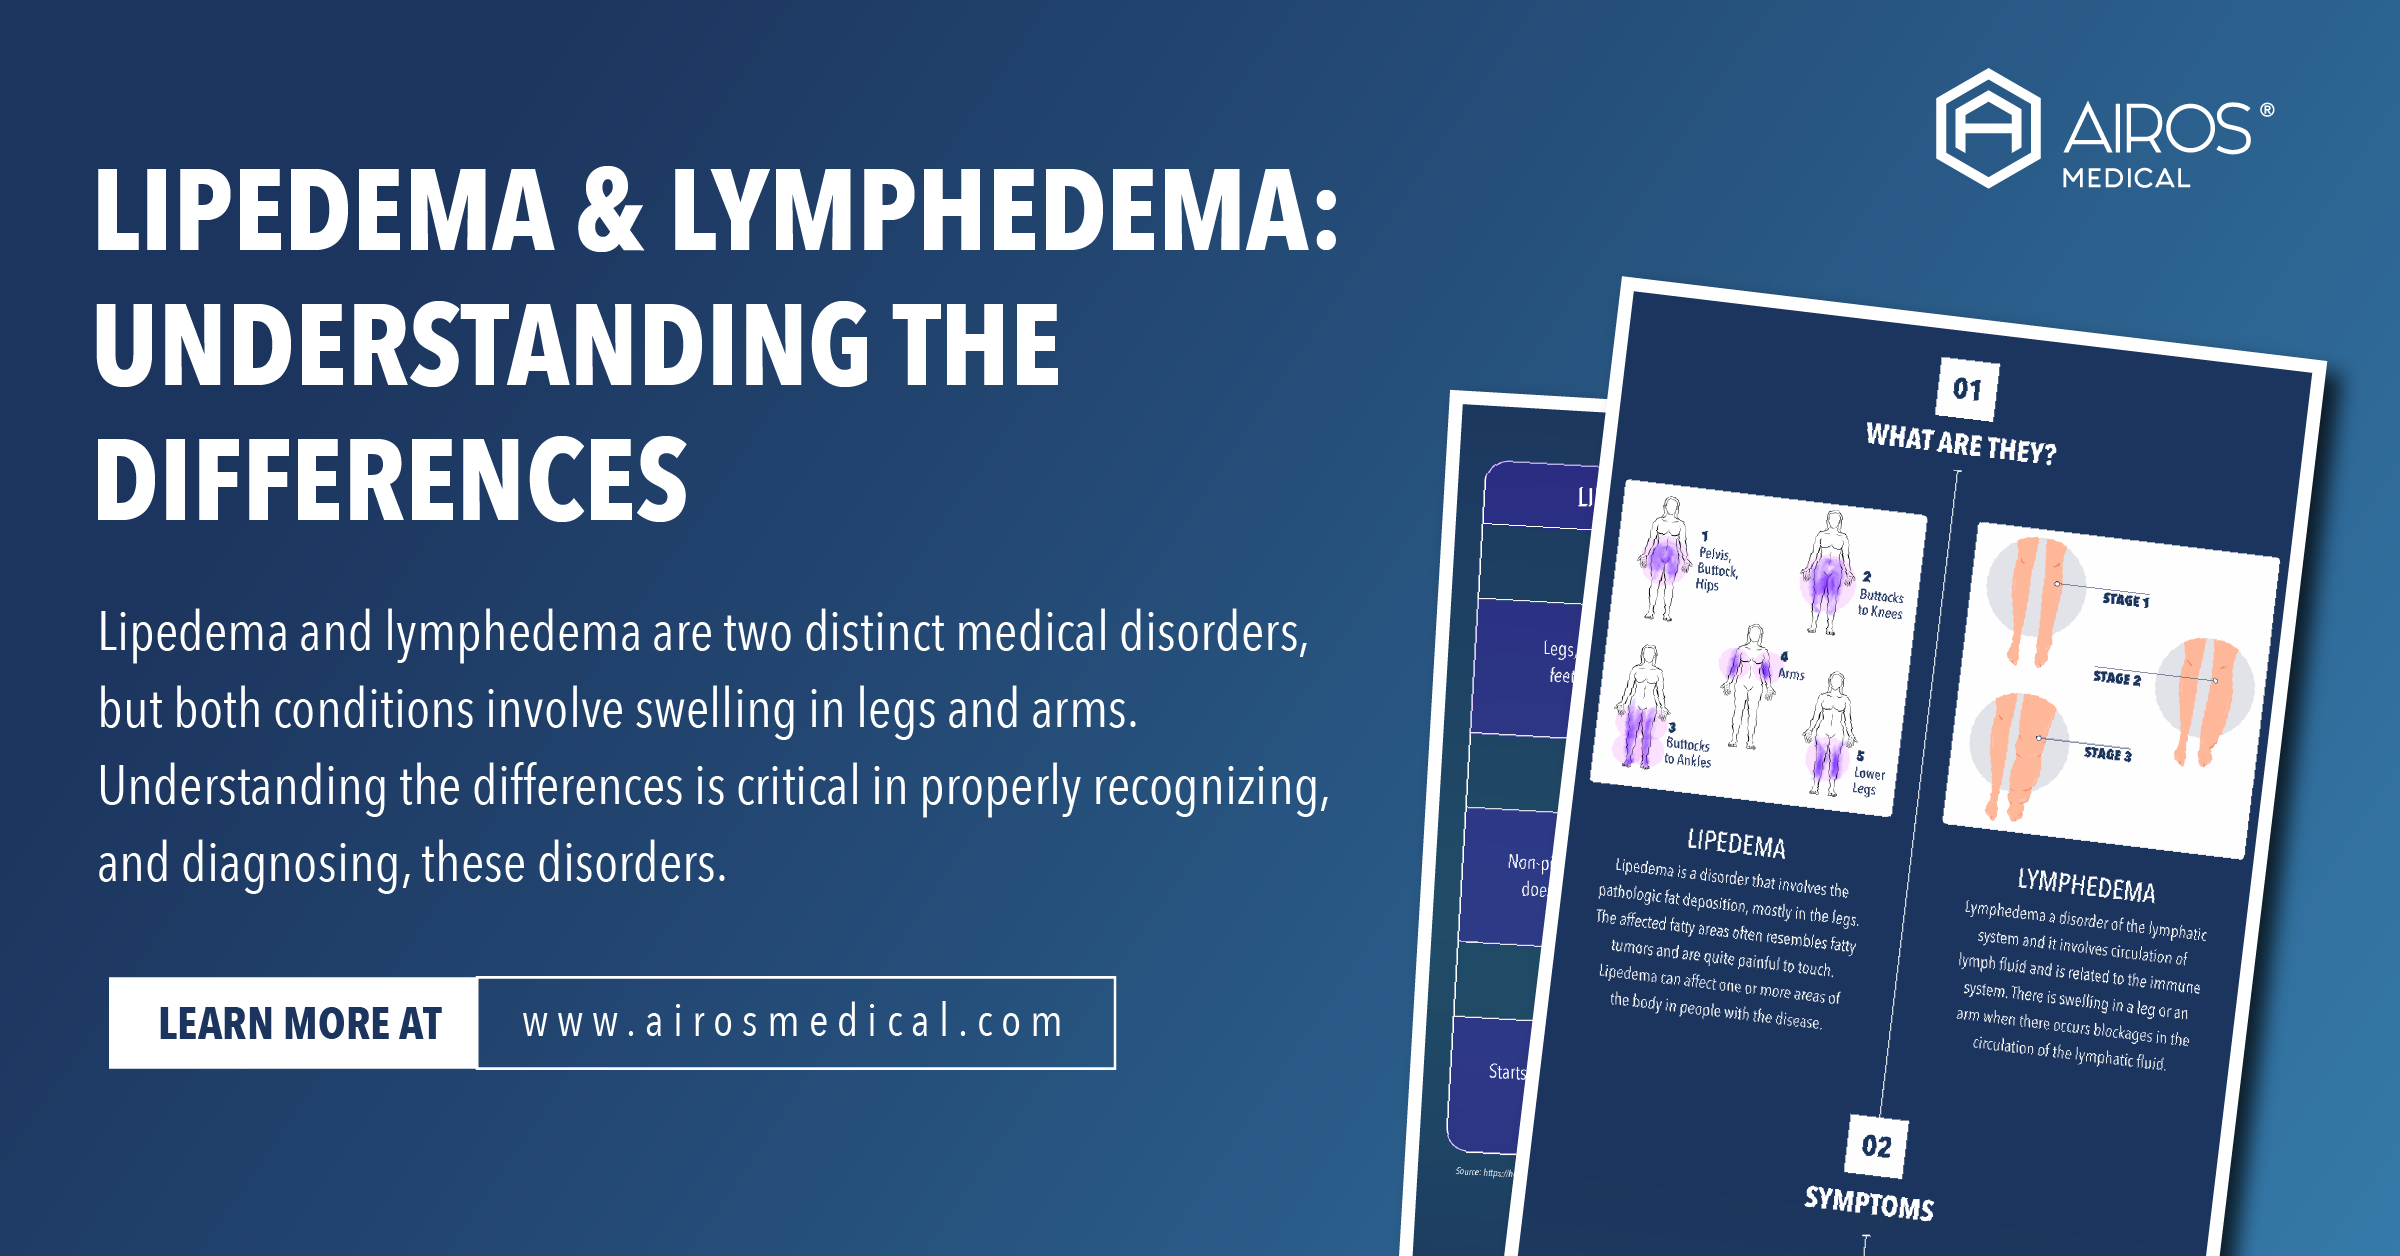 Lipedema & Lymphedema: Understanding The Differences